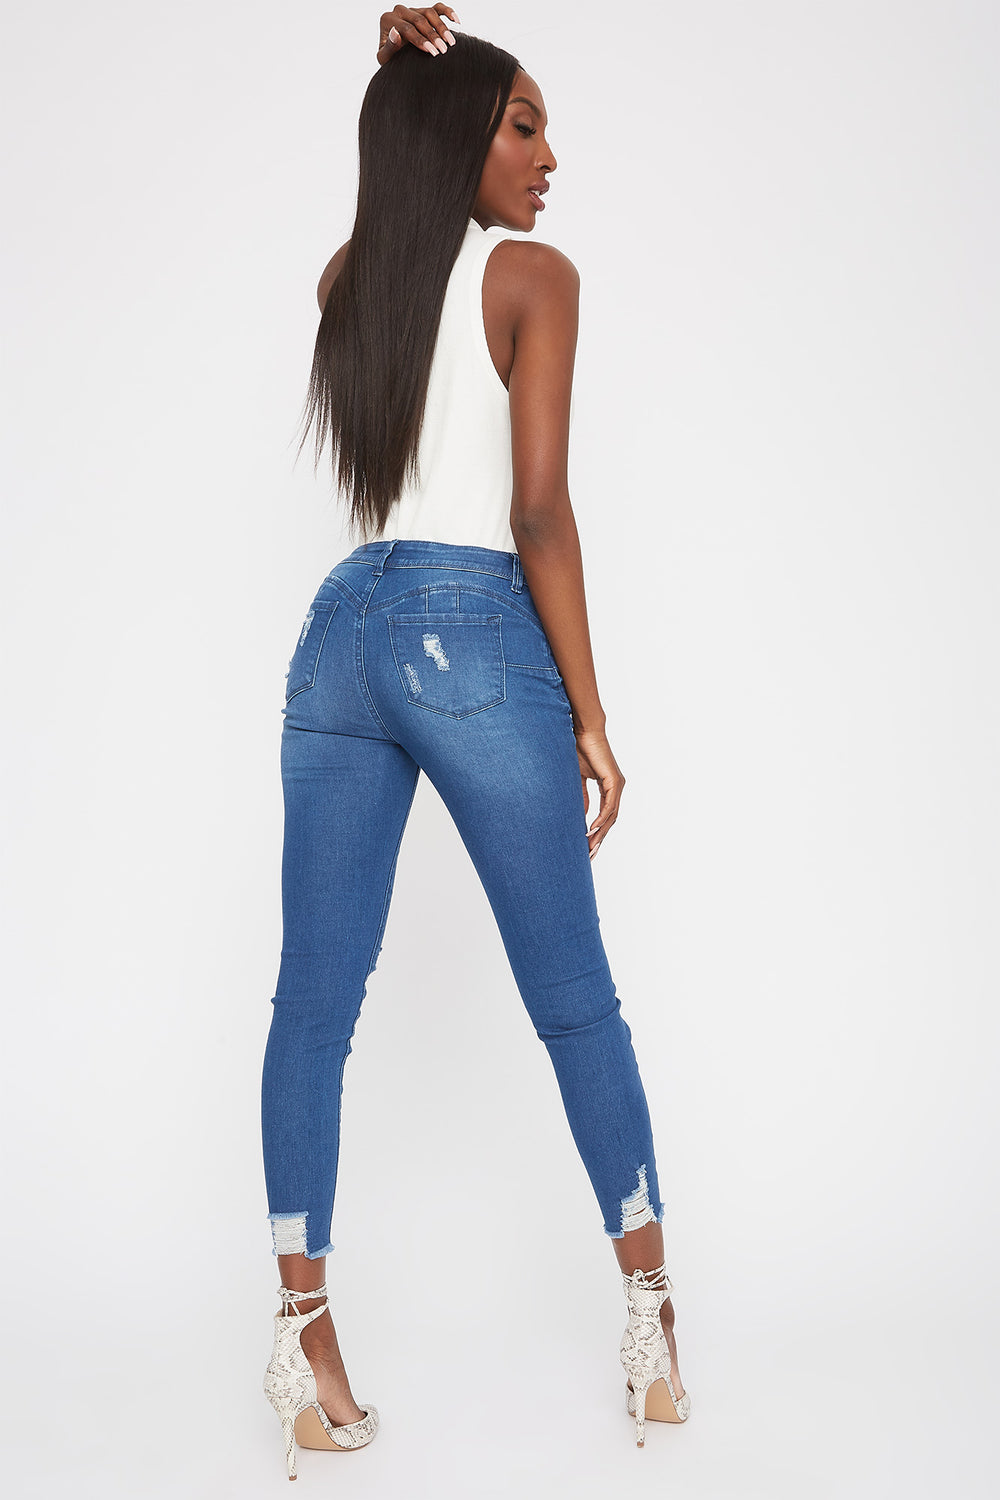 Butt, I Love You Distressed Push-Up Skinny Jean Medium Blue